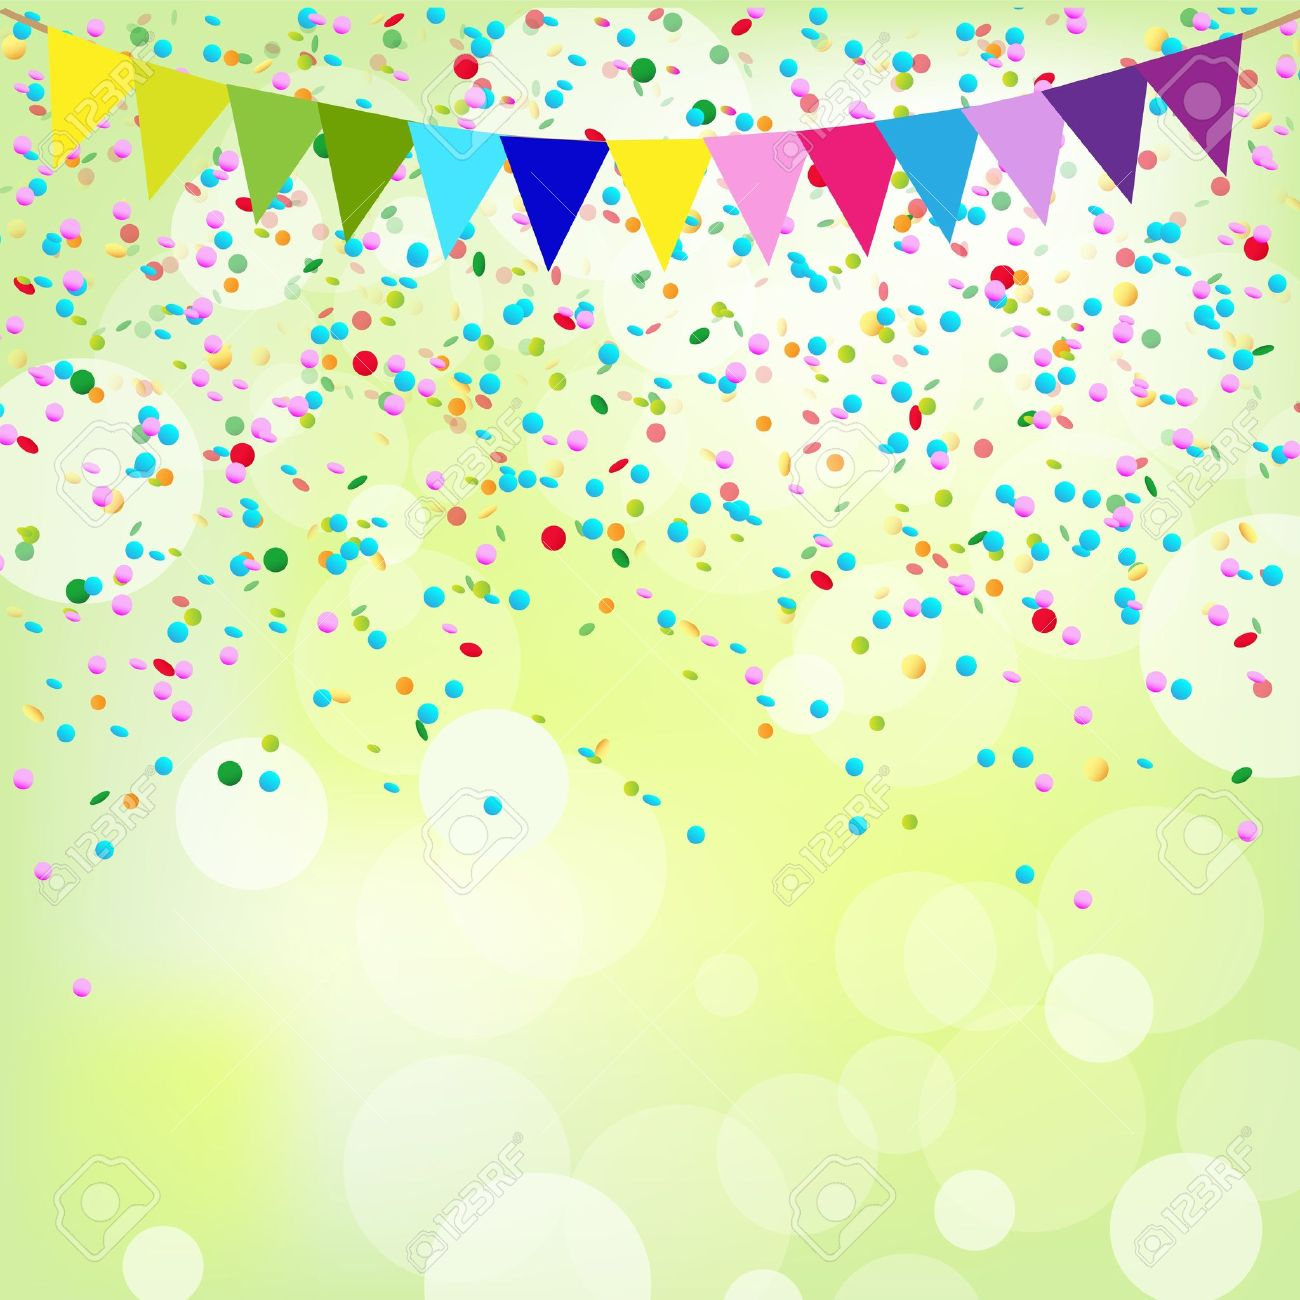 picture poster for birthday ; 12285320-birthday-poster-vector-background-Stock-Photo